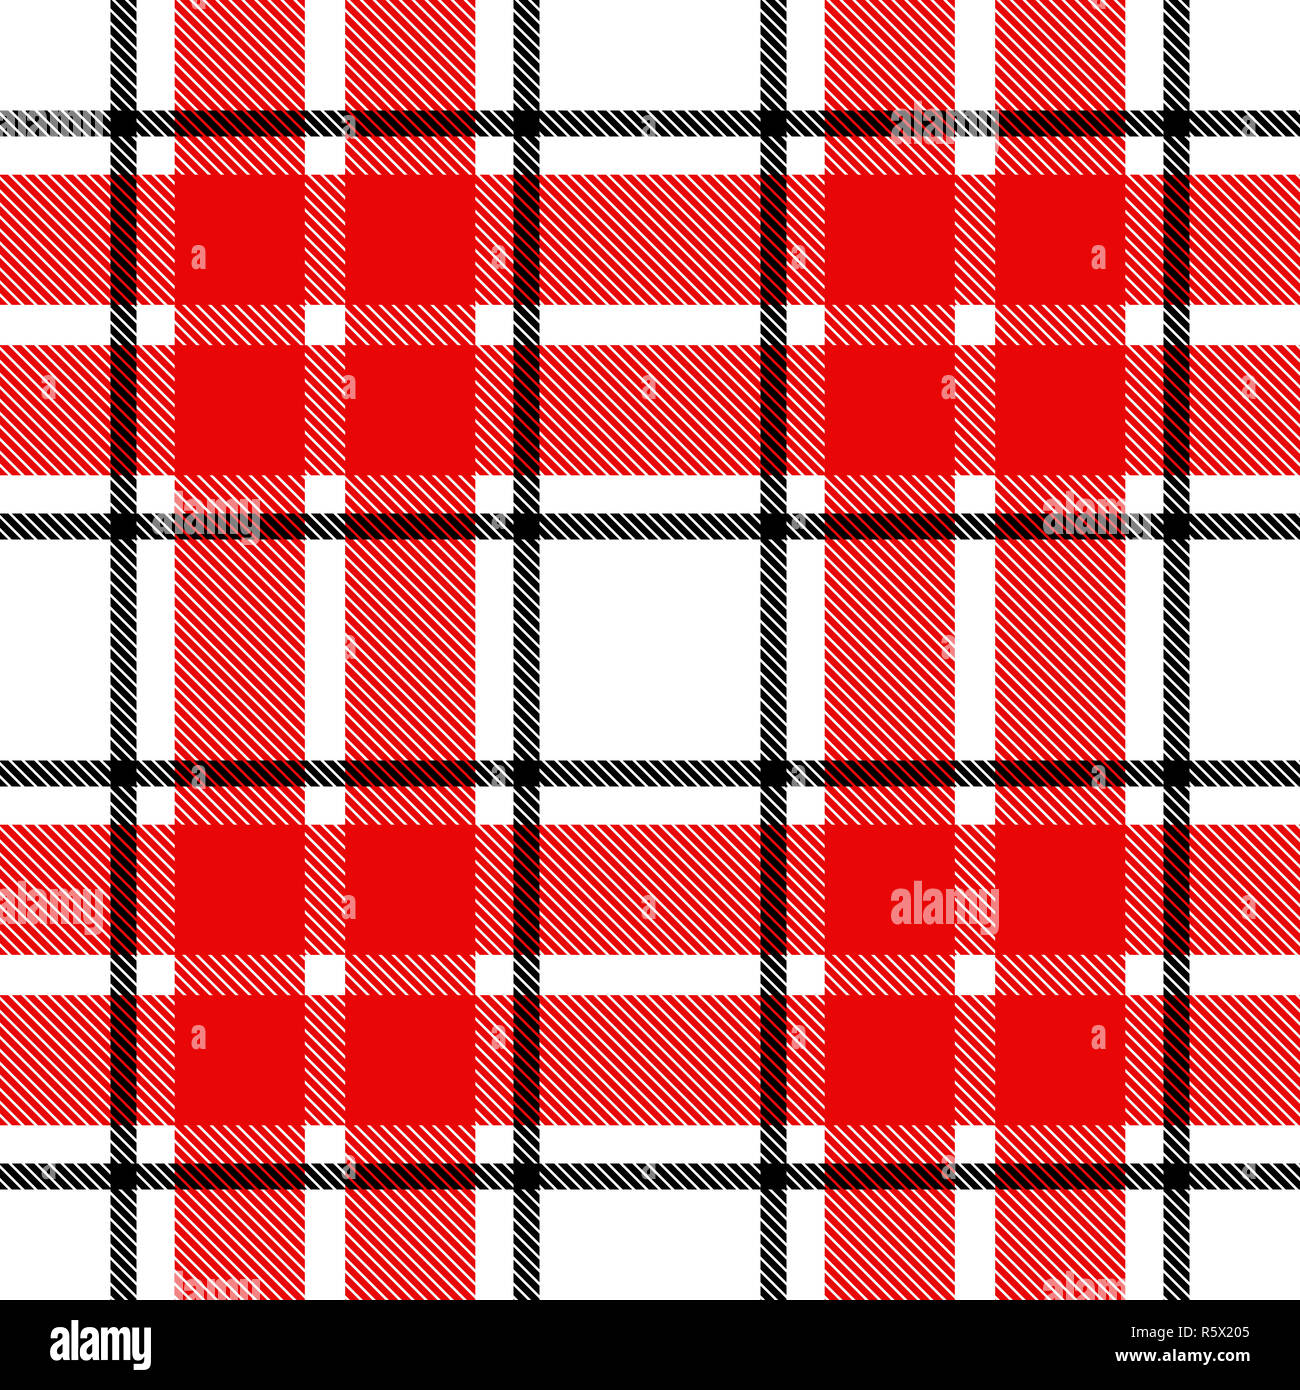 Seamless Plaid Tartan Check Pattern Black White And Red Design